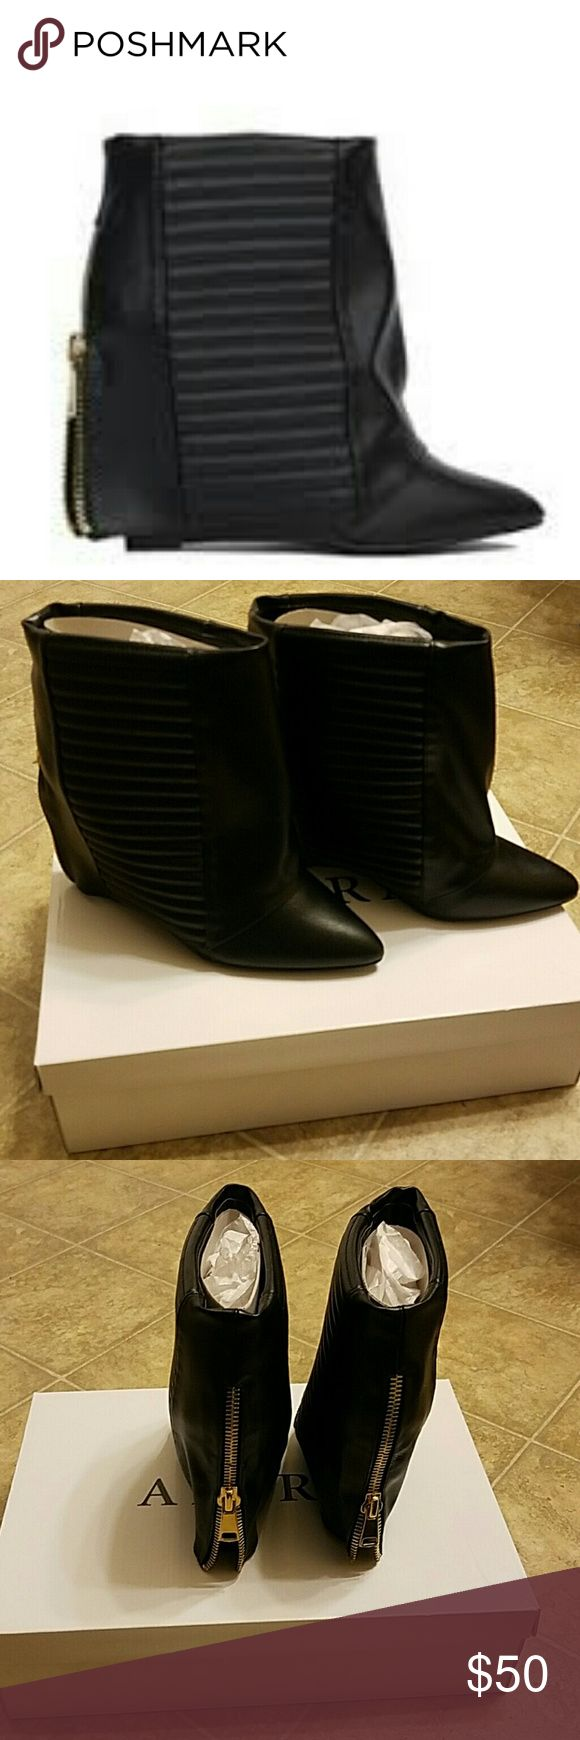 New Akira Black Fold Over Boots 10 Brand new with box fold over short boots. If you have any questions before purchasing please contact me. Thanks for looking. AKIRA Shoes Ankle Boots & Booties